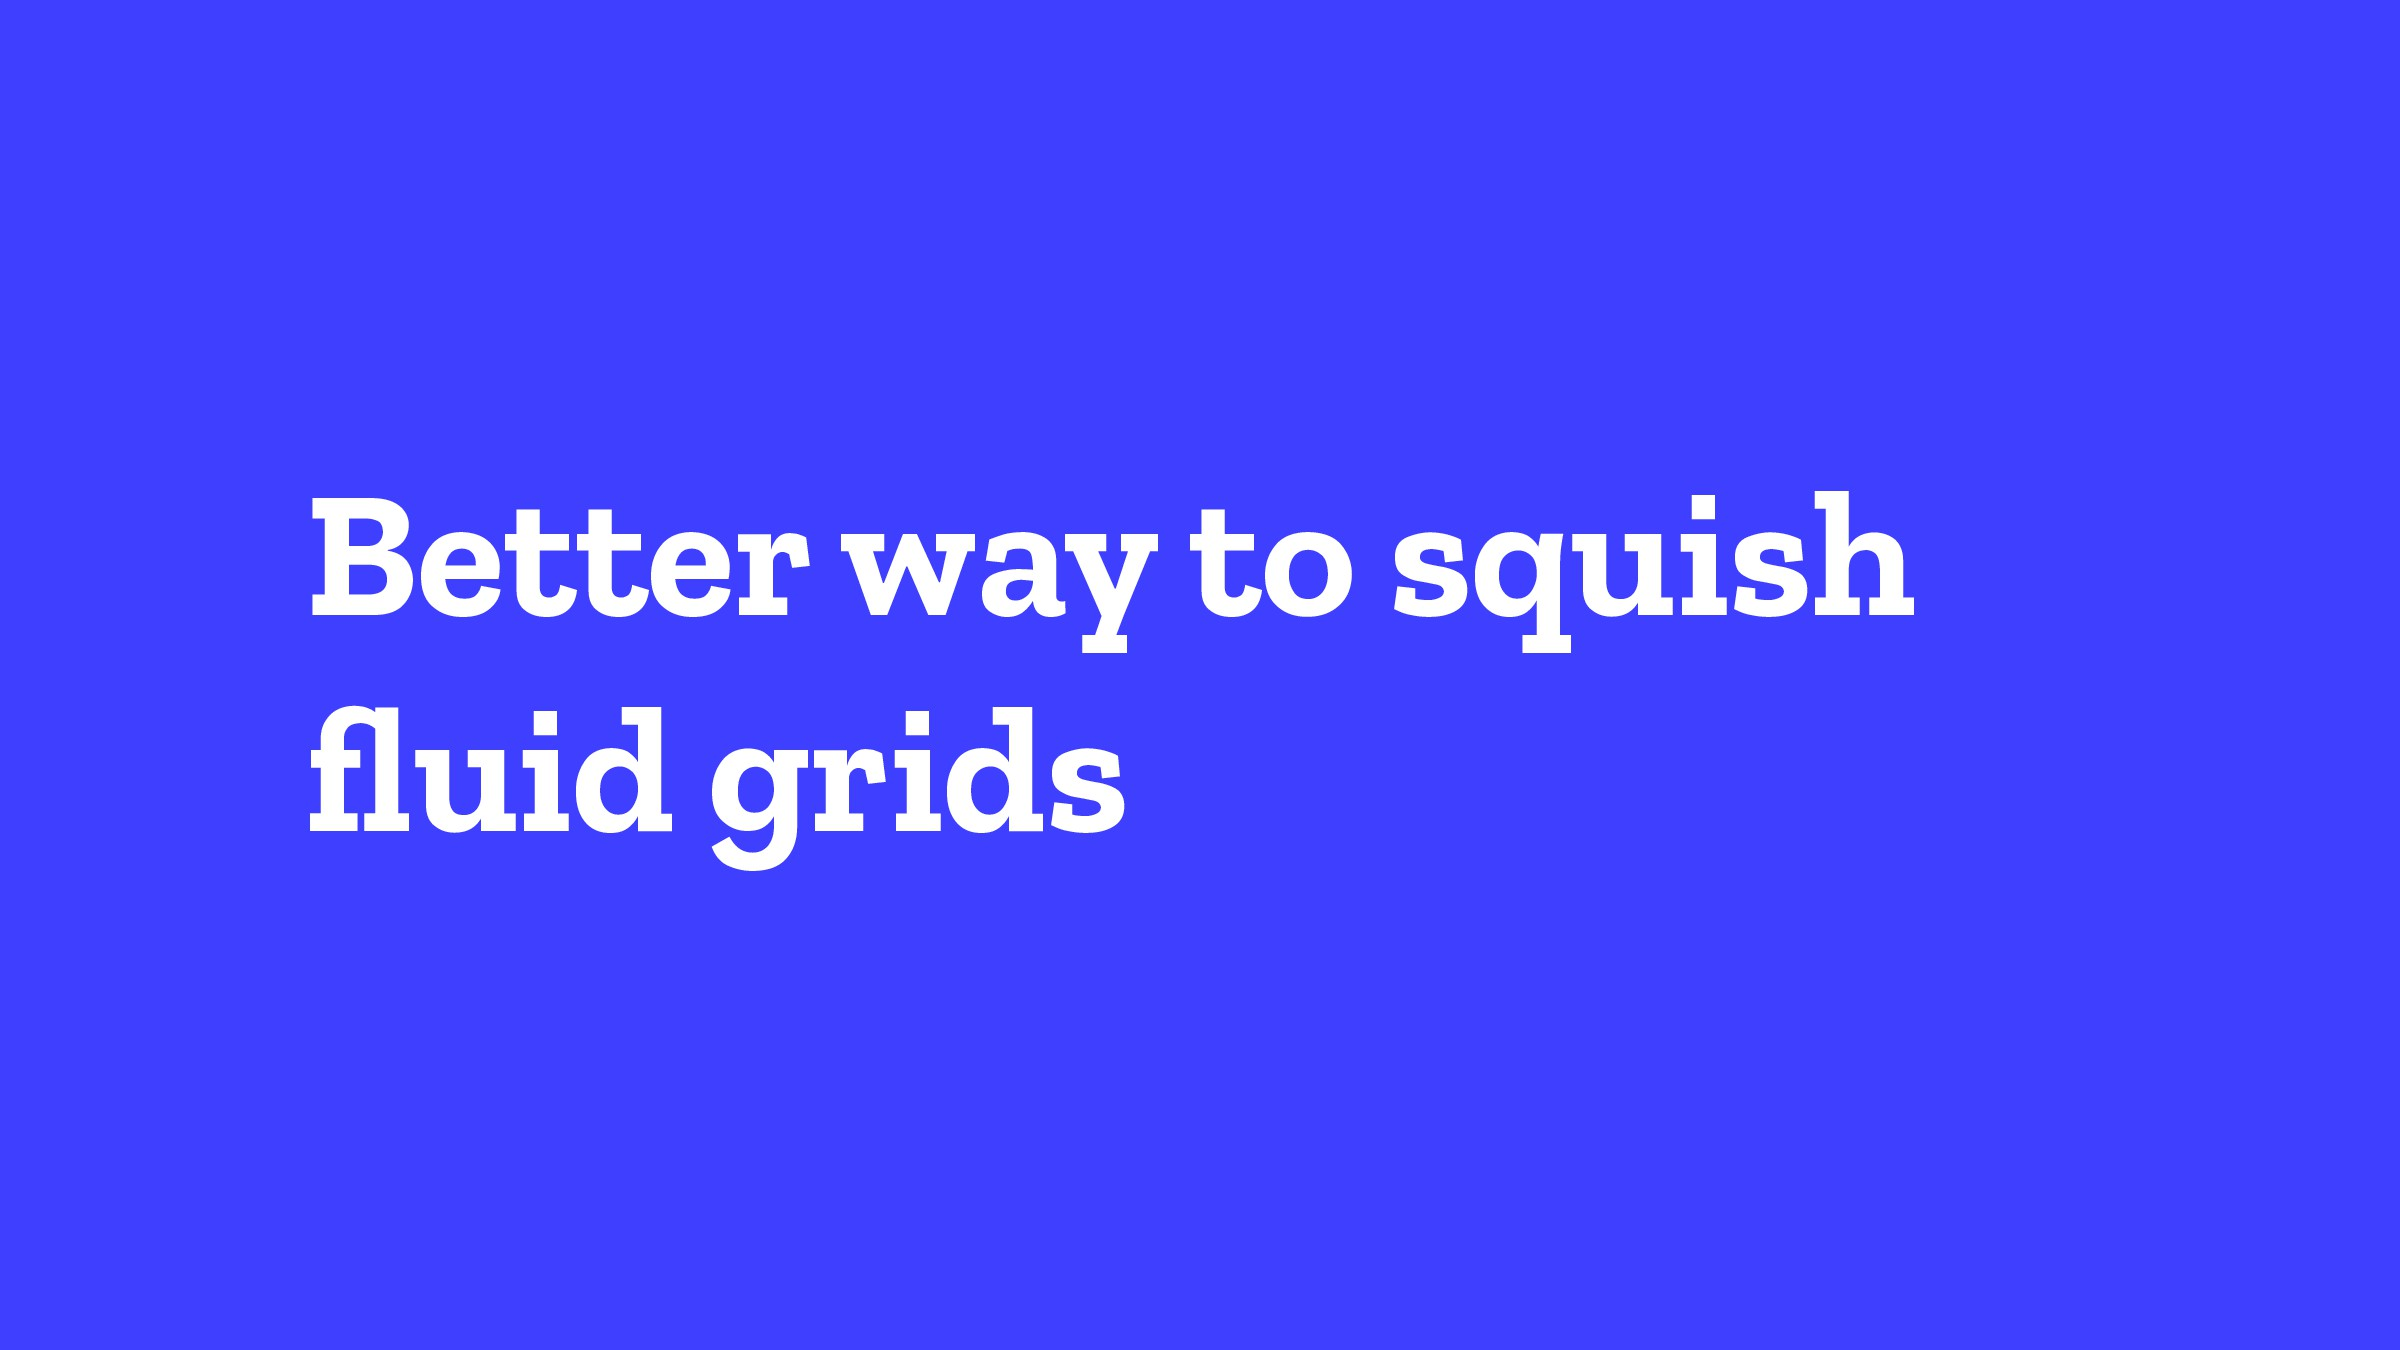 Better way to squish fluid grids